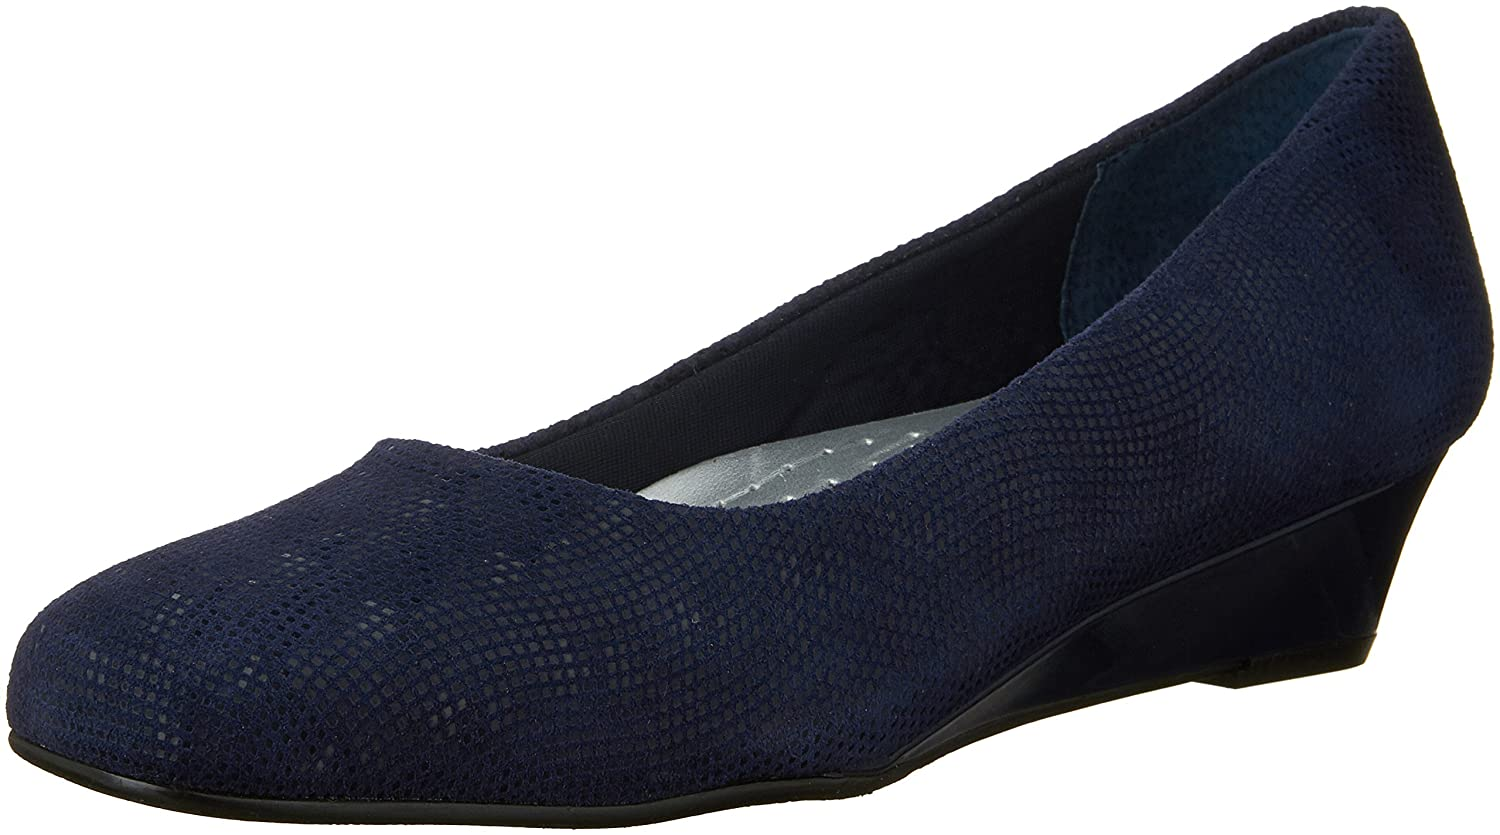 Trotters Women's Lauren Dress Wedge Suede B00LMGZYJI 12 N US|Navy Suede Wedge 87e3d0